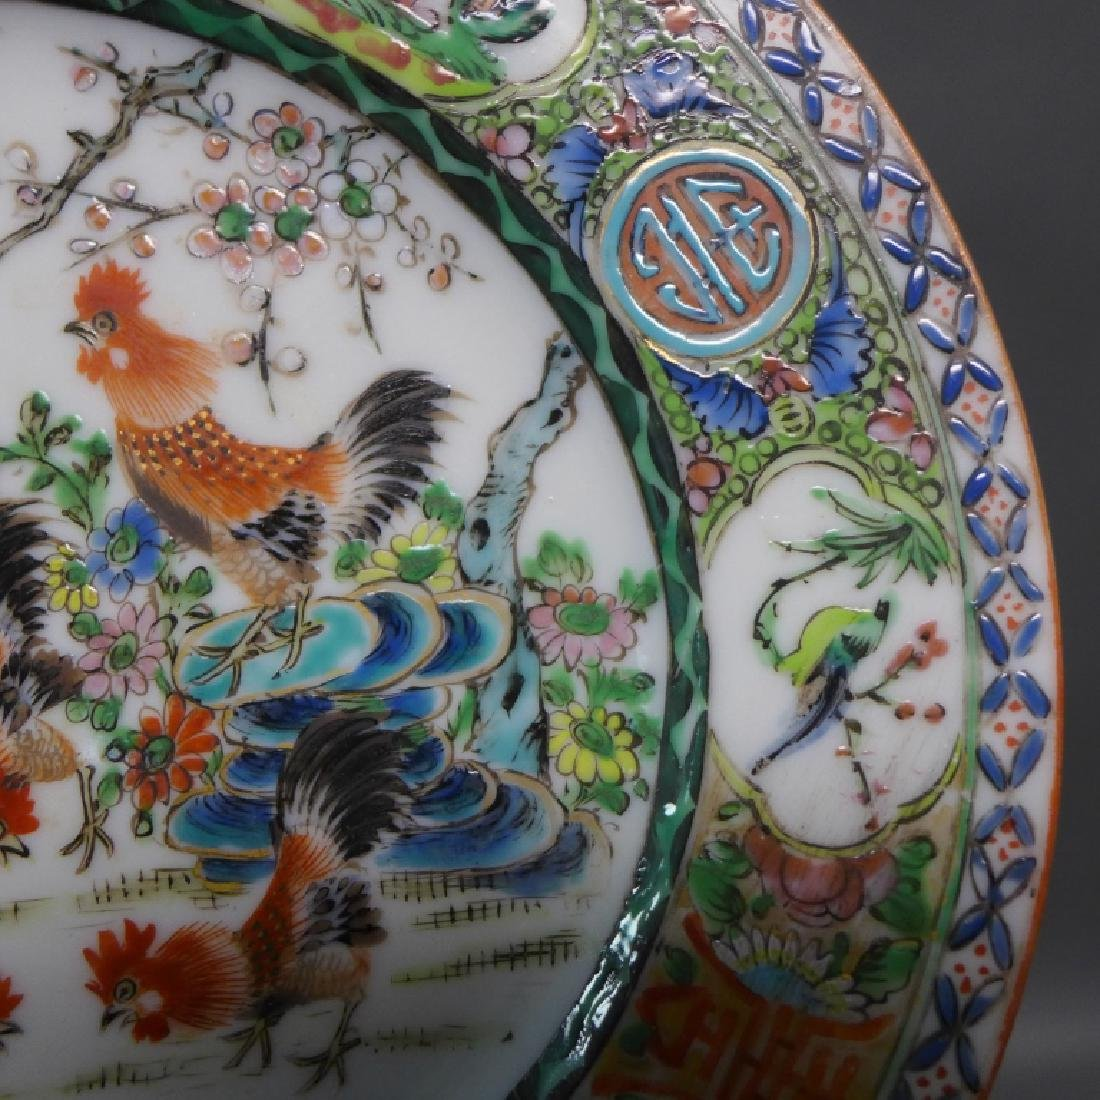 Antique Chinese Export Porcelain Rooster Plate - 6